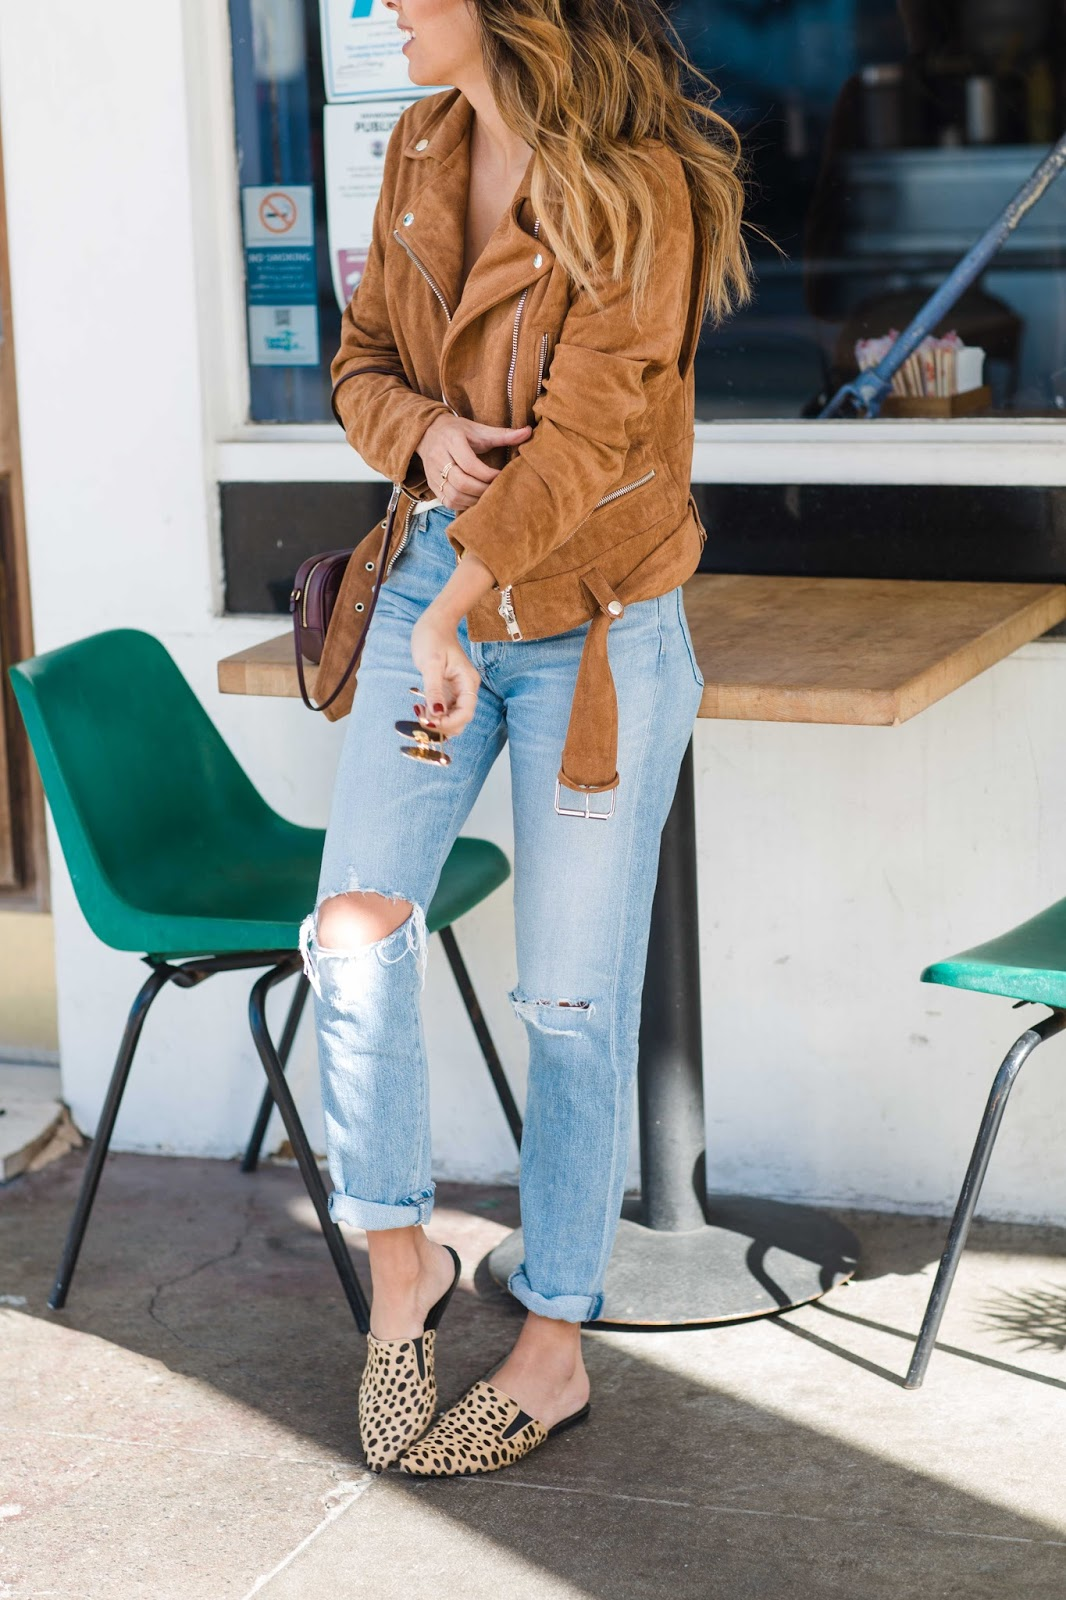 how to style boyfriend jeans, how to wear slides, casual weekend outfit, pursuit of shoes